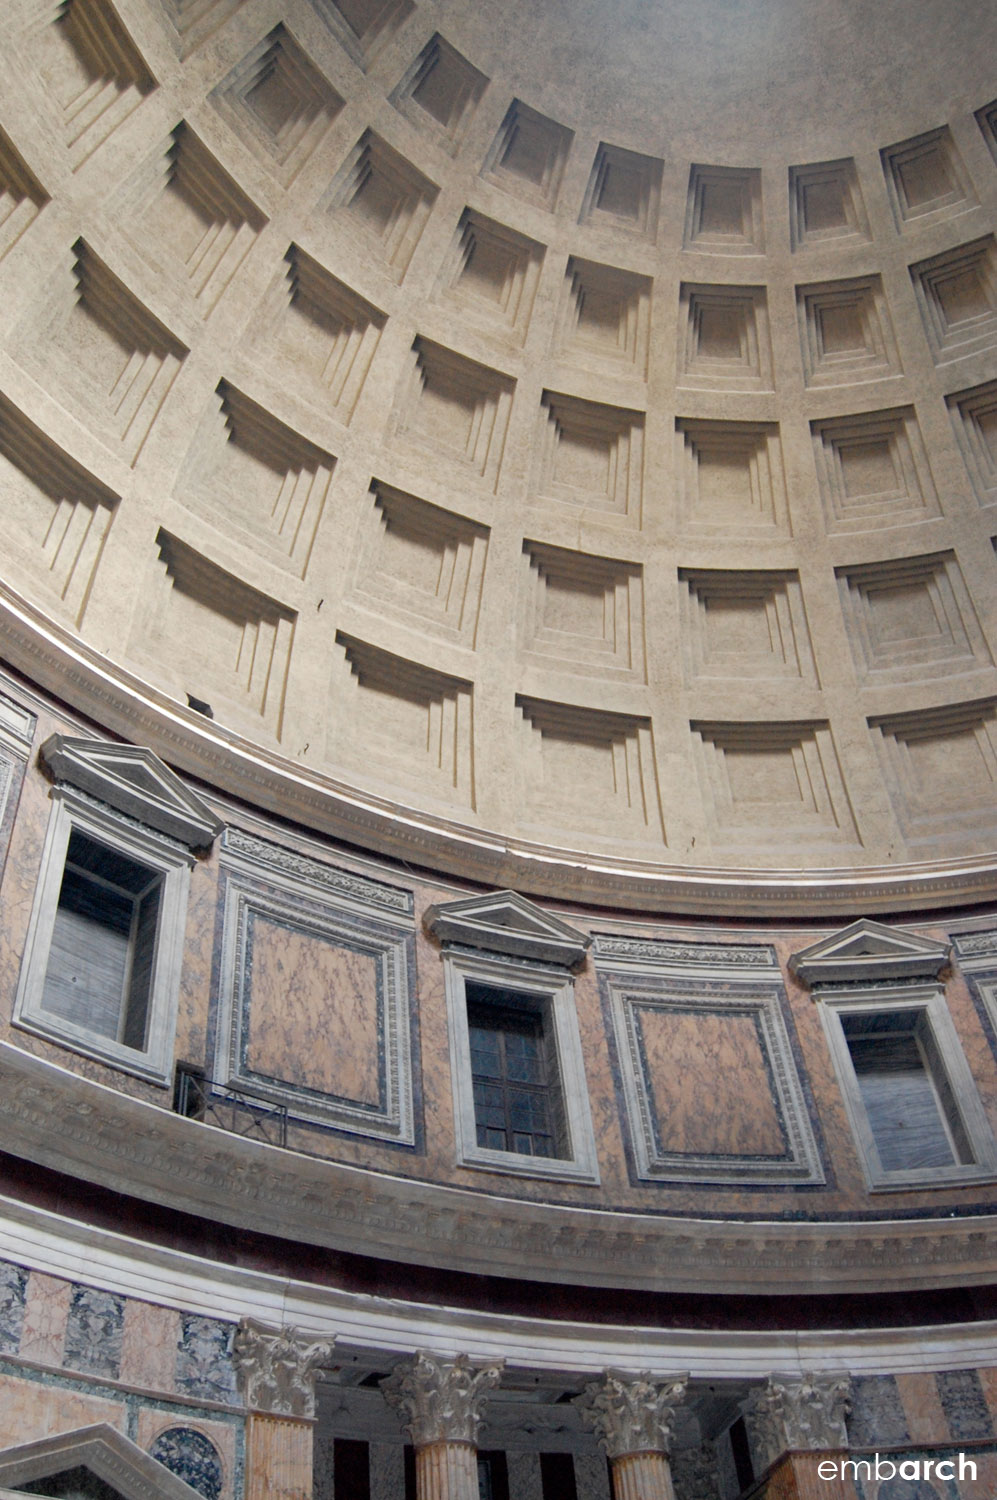 Pantheon - interior dome detail